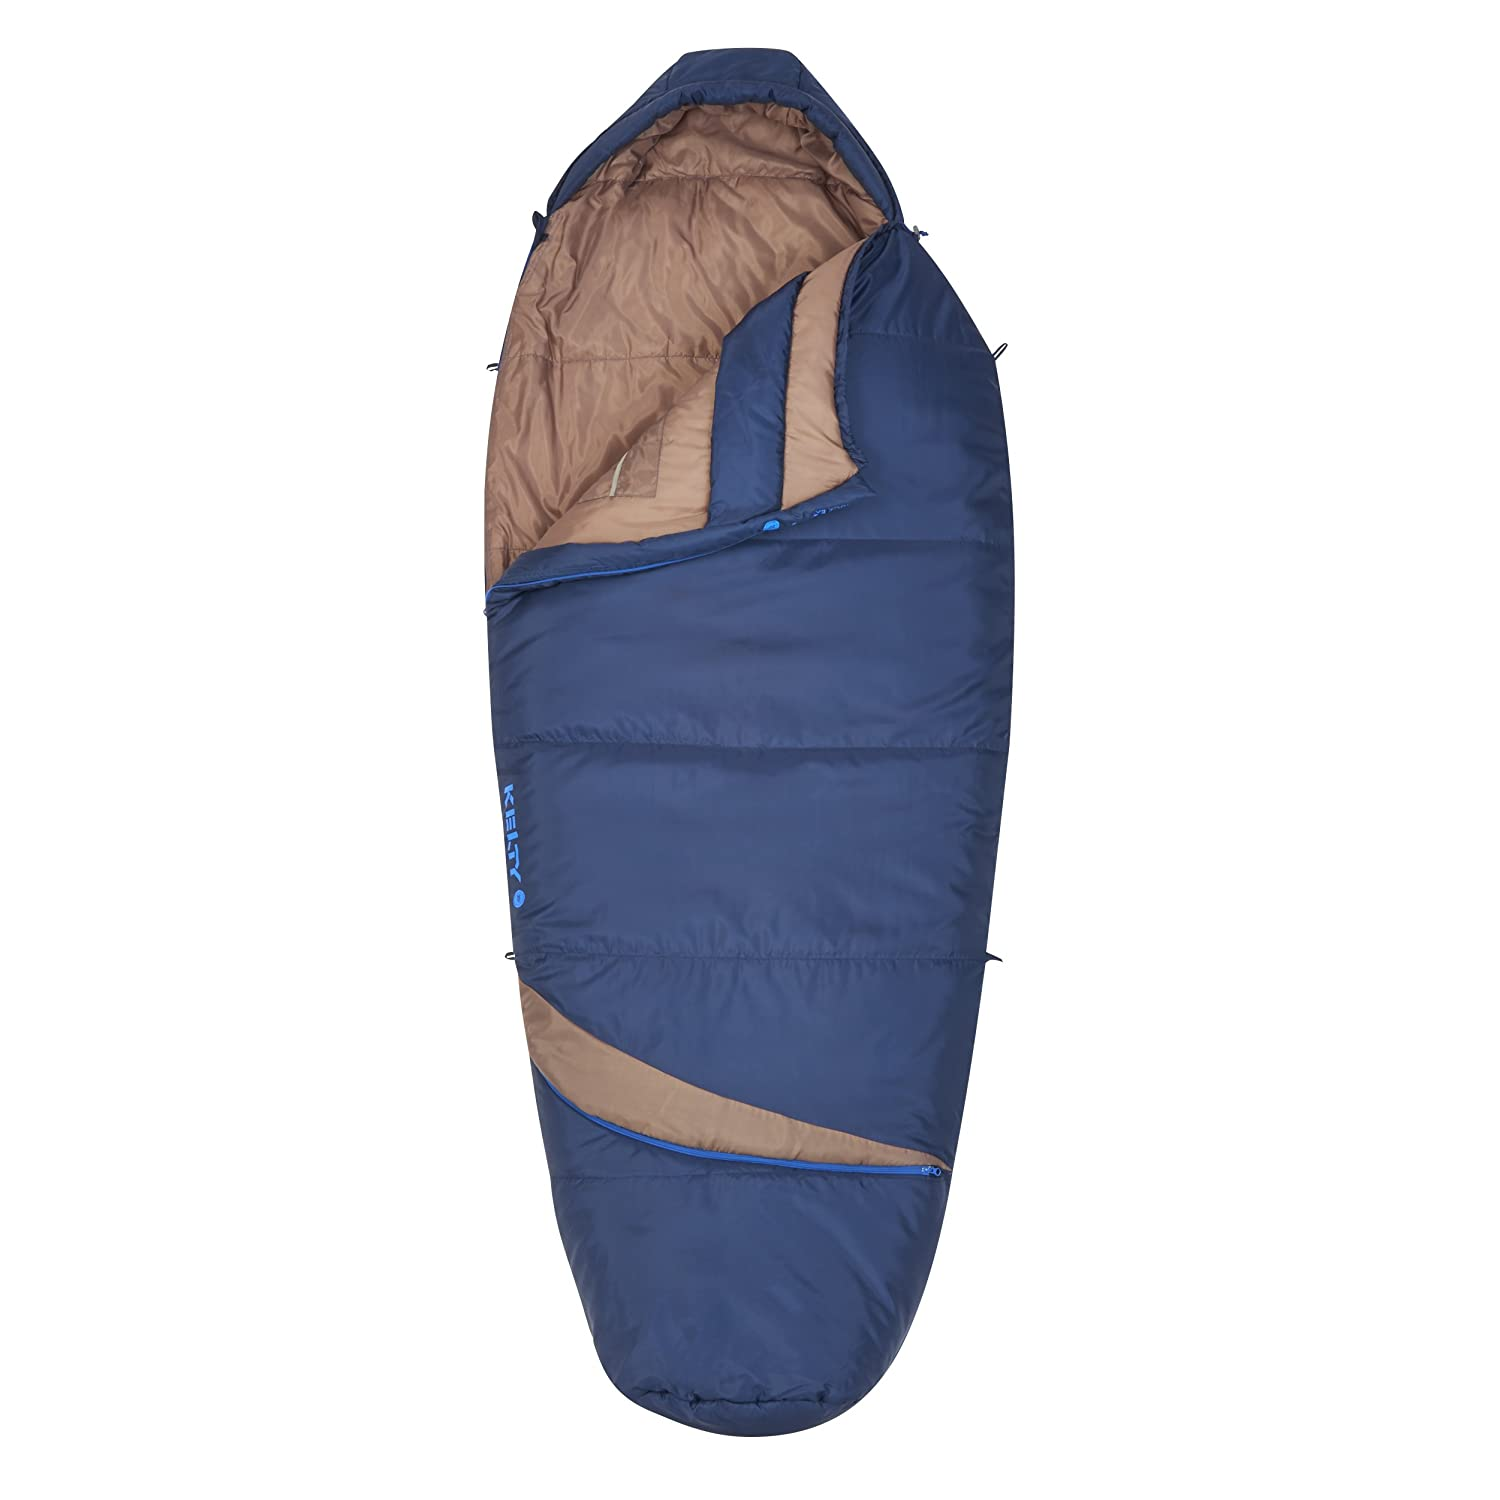 Tuck Ex Sleeping Bag - 20 Degree by Kelty B014JQIKZM